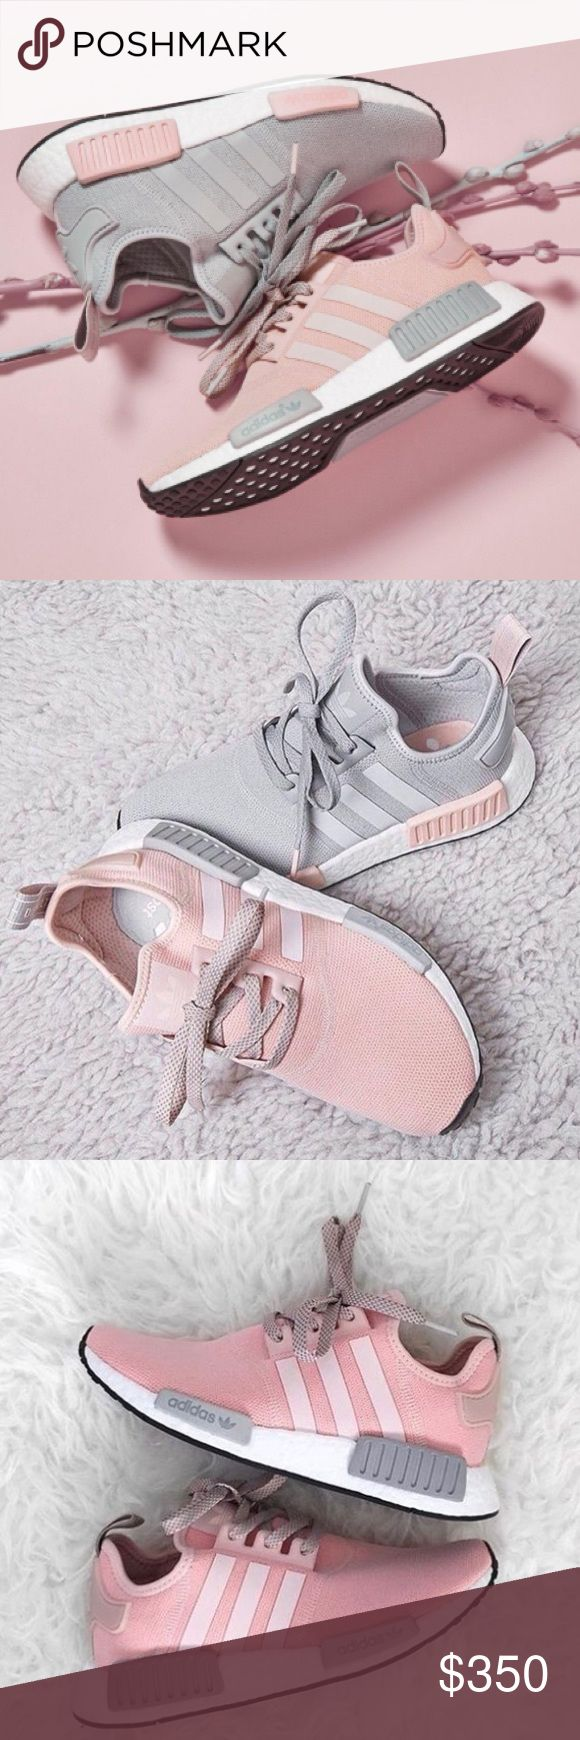 New Adidas NMD R1 Vapour Pink NO TRADES•••• New Women Adidas NMD. Featherweight sneakers with the adidas boost cushioning. Upper is made of suede and neoprene which makes these. Also have EVA foam plugs which provides more comfort for the underfoot. Have the classic 3 stripes.  Colorway : Vapour pink  #adidas #NMD #boost #women #yeezy White talc cream salmon pink Adidas Shoes Sneakers